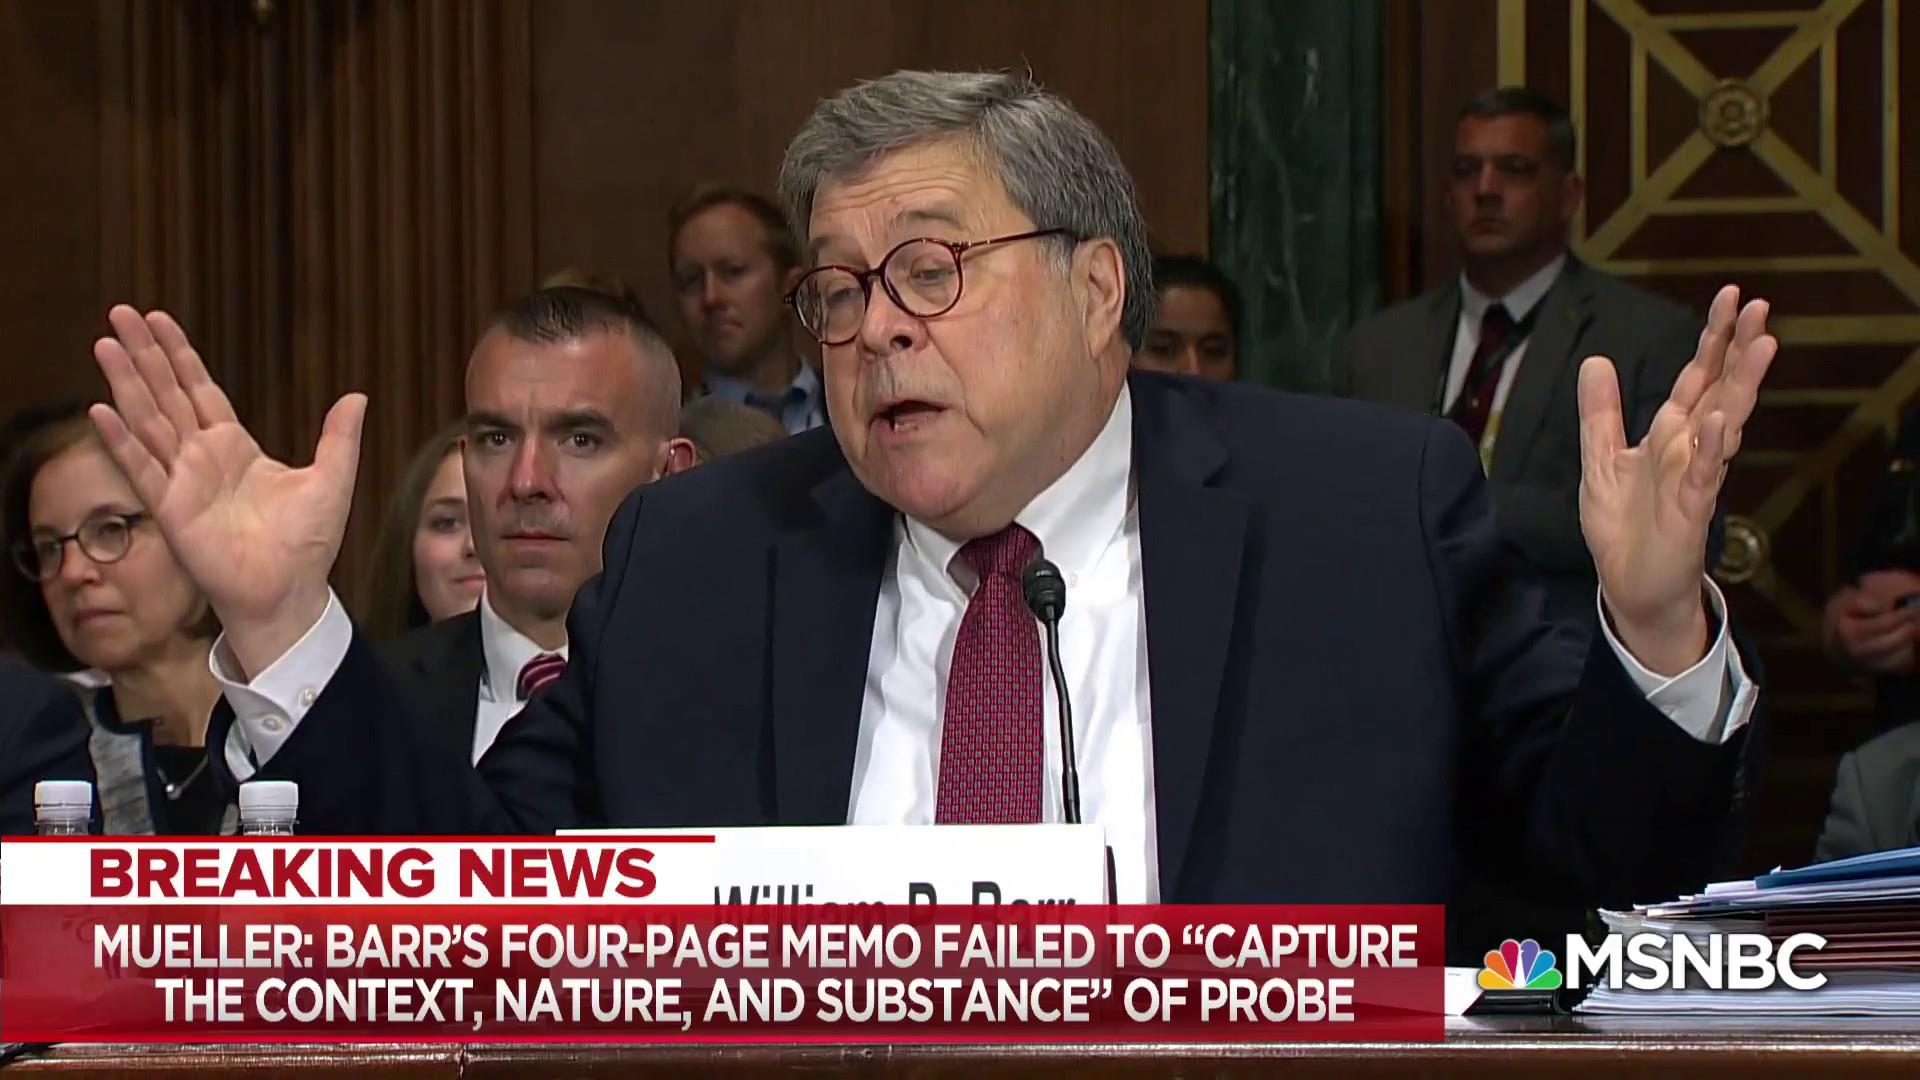 Barr makes dubious legal claims; letter exposes rift with Muller